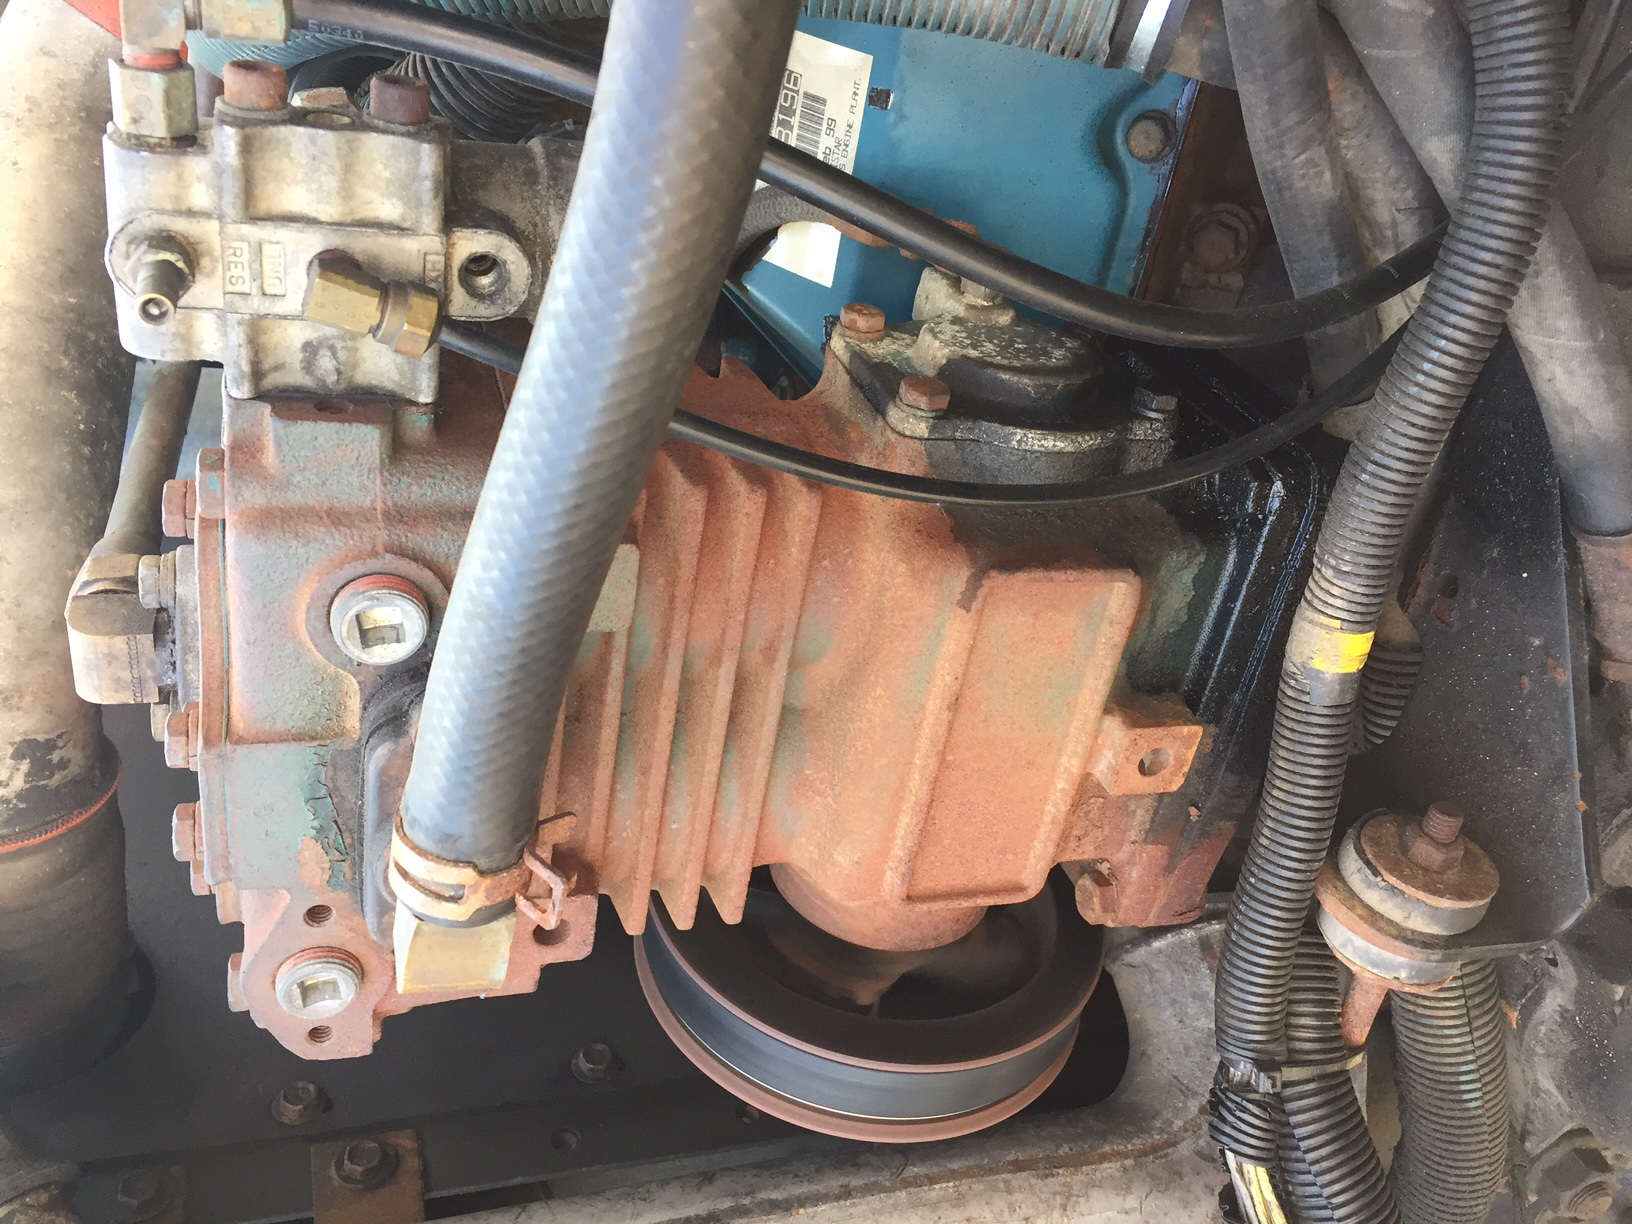 Jeremy please-- Wondering if this air compressor can be fixed